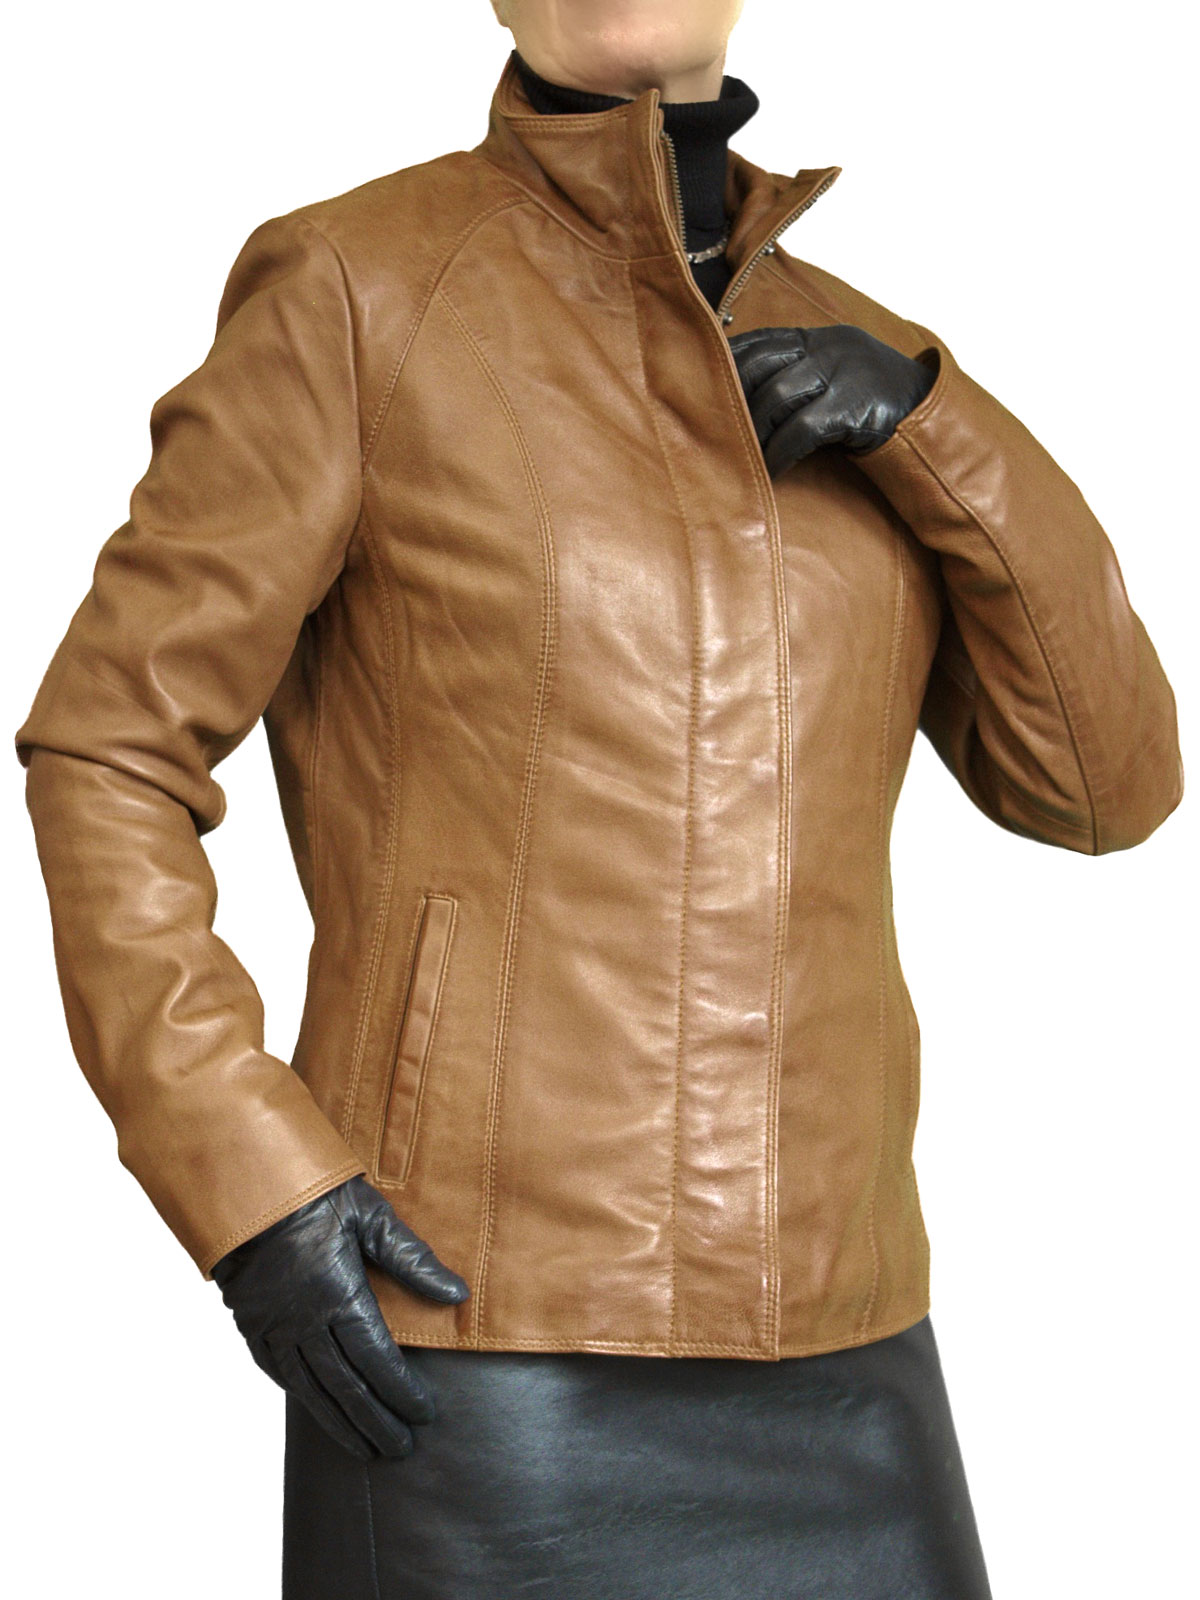 Ladies Cognac Tan Luxury Leather Jacket